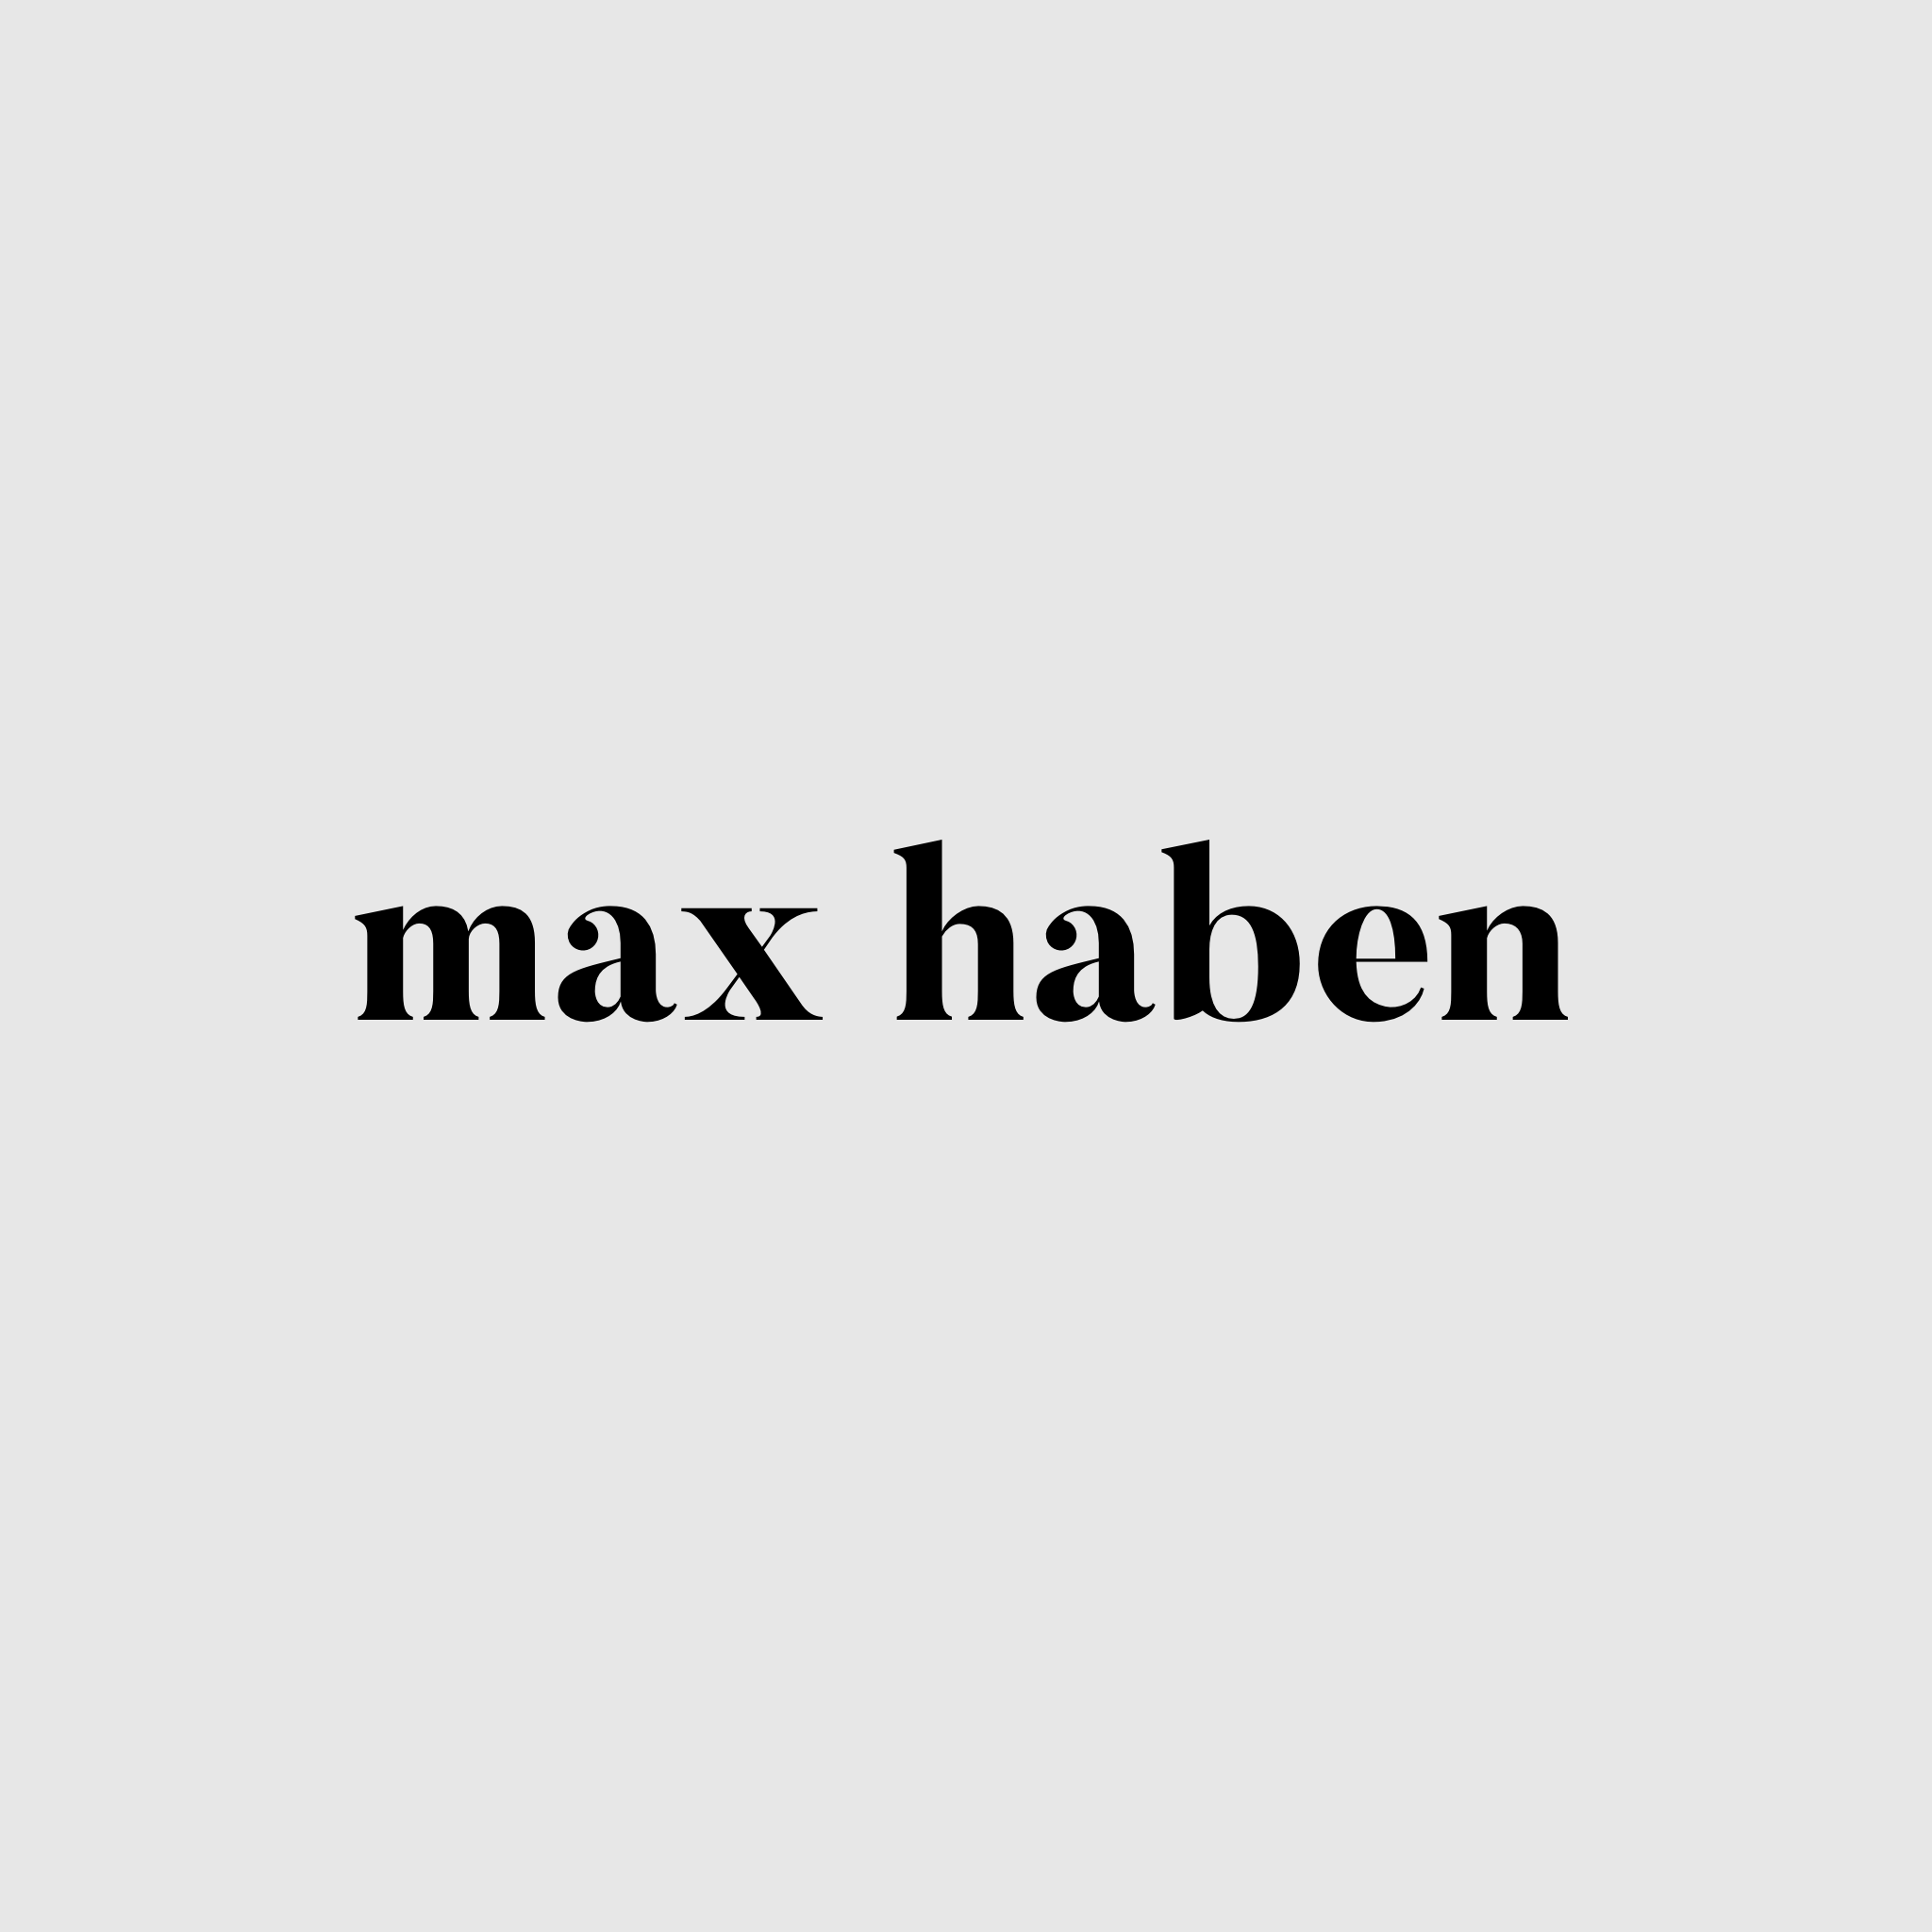 Max Haben  is a self-taught filmmaker with exceptional talent. Based in DC, he travels quite a bit taking on an array of projects: music videos, ads, personal stories. On the side, he does incredible wedding films.